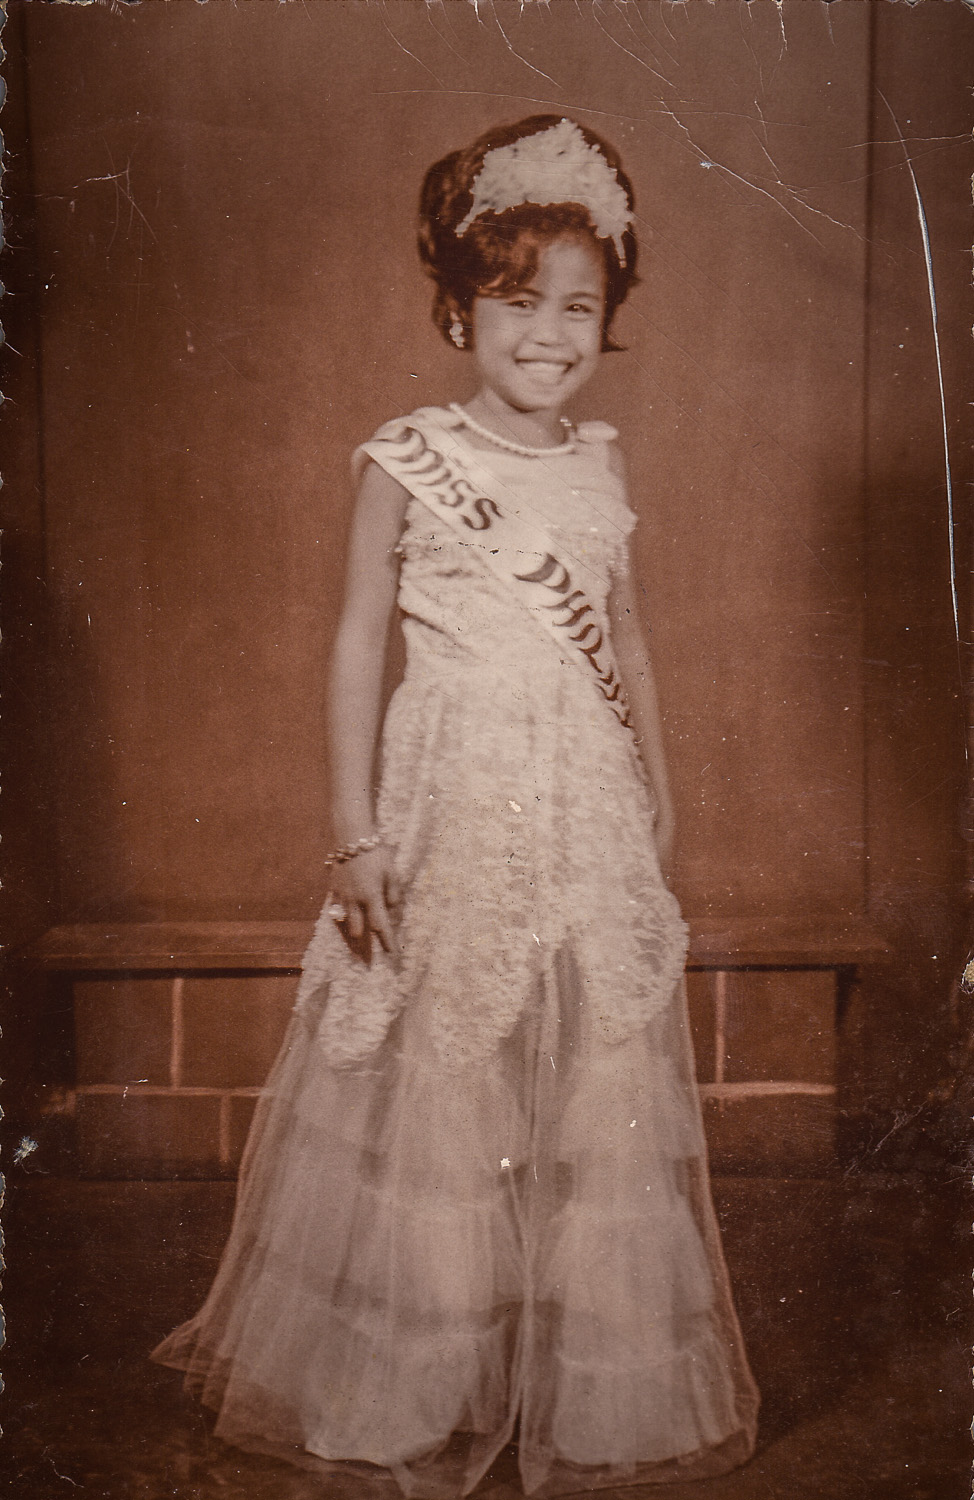 Ate Grace when she probably 6yrs old.